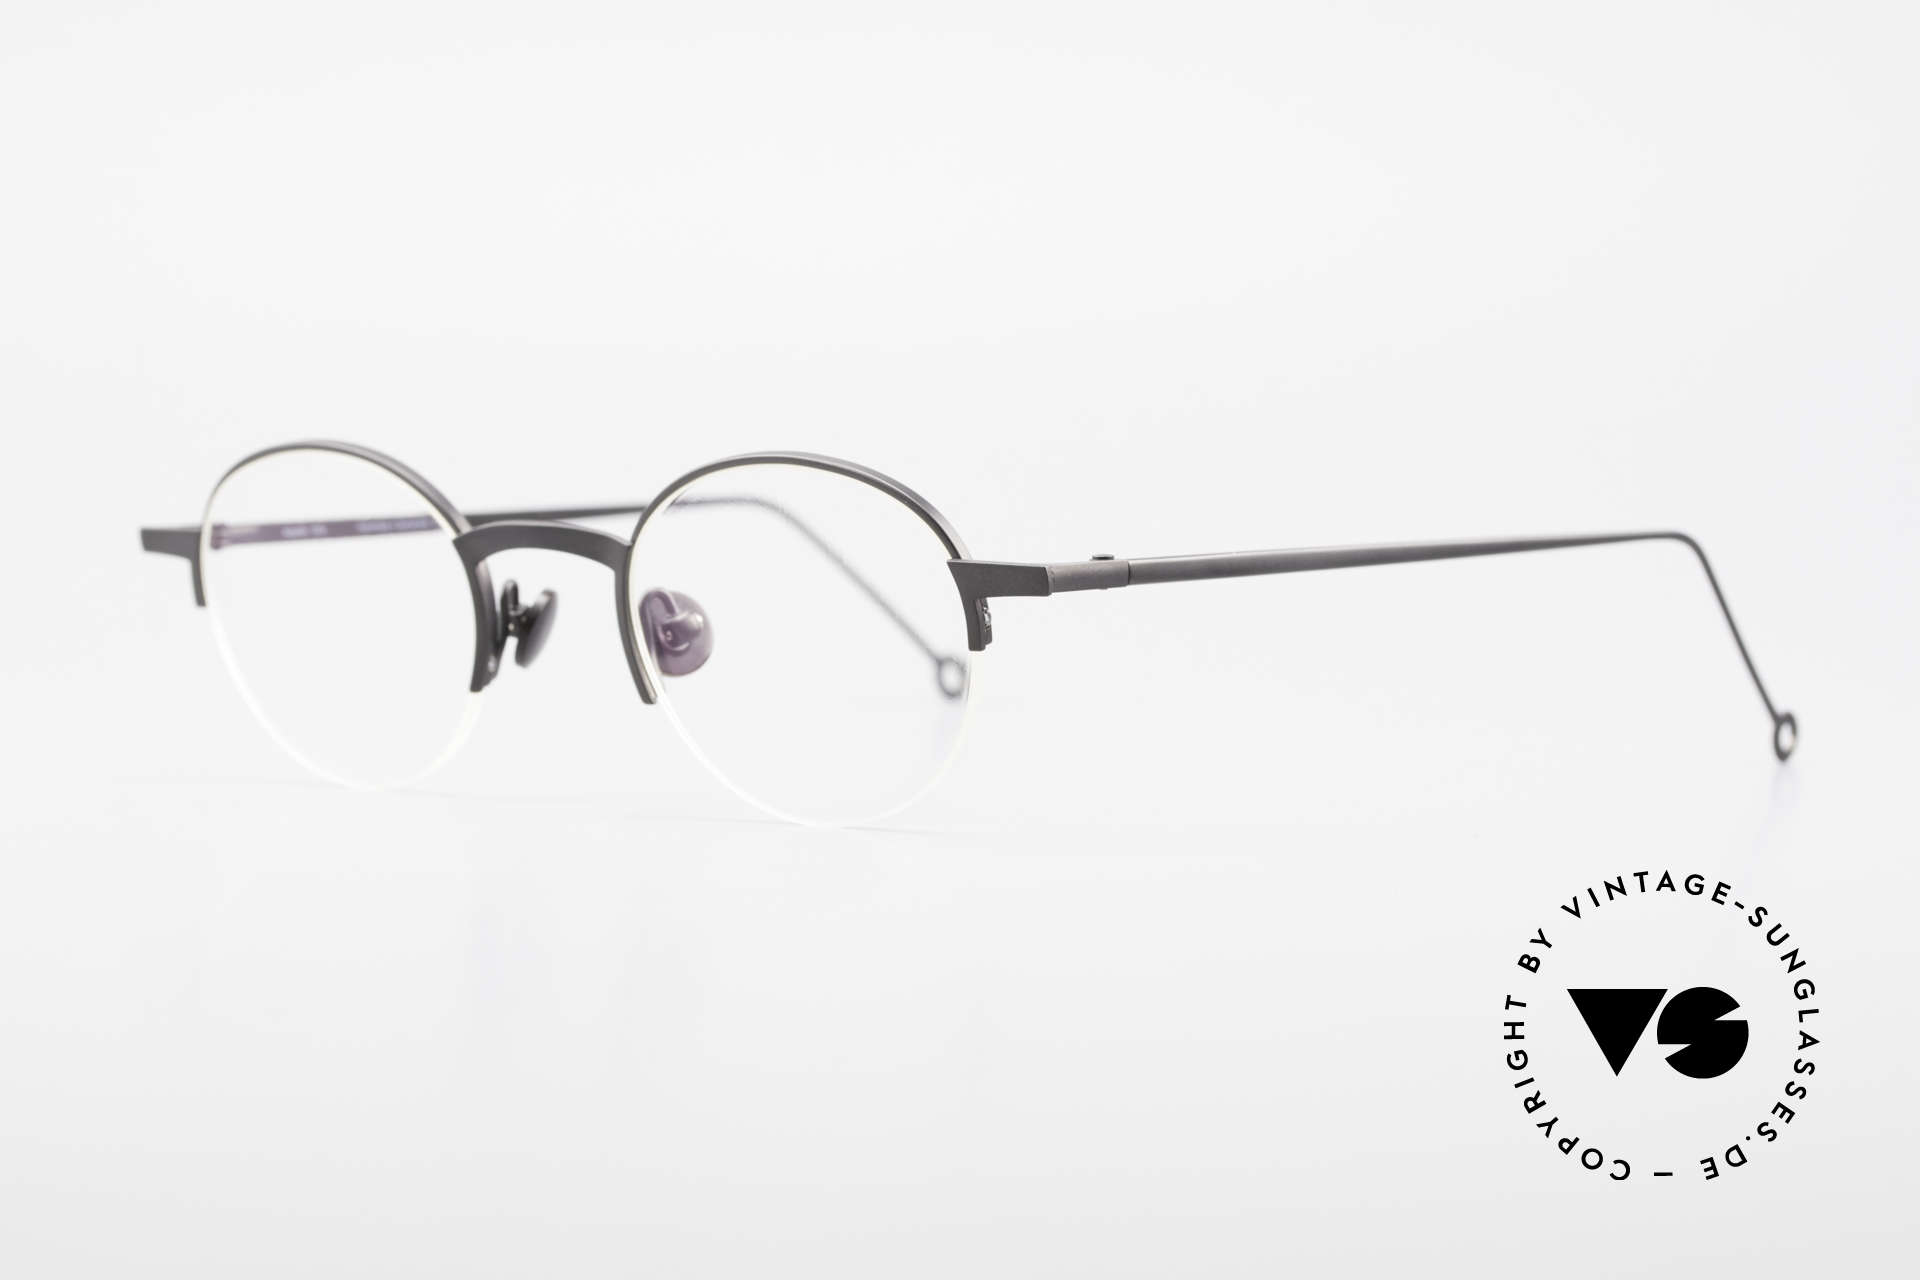 Markus Marienfeld Sina Pure Titanium Frame Handmade, classic Panto Style glasses in top-notch quality, Made for Men and Women